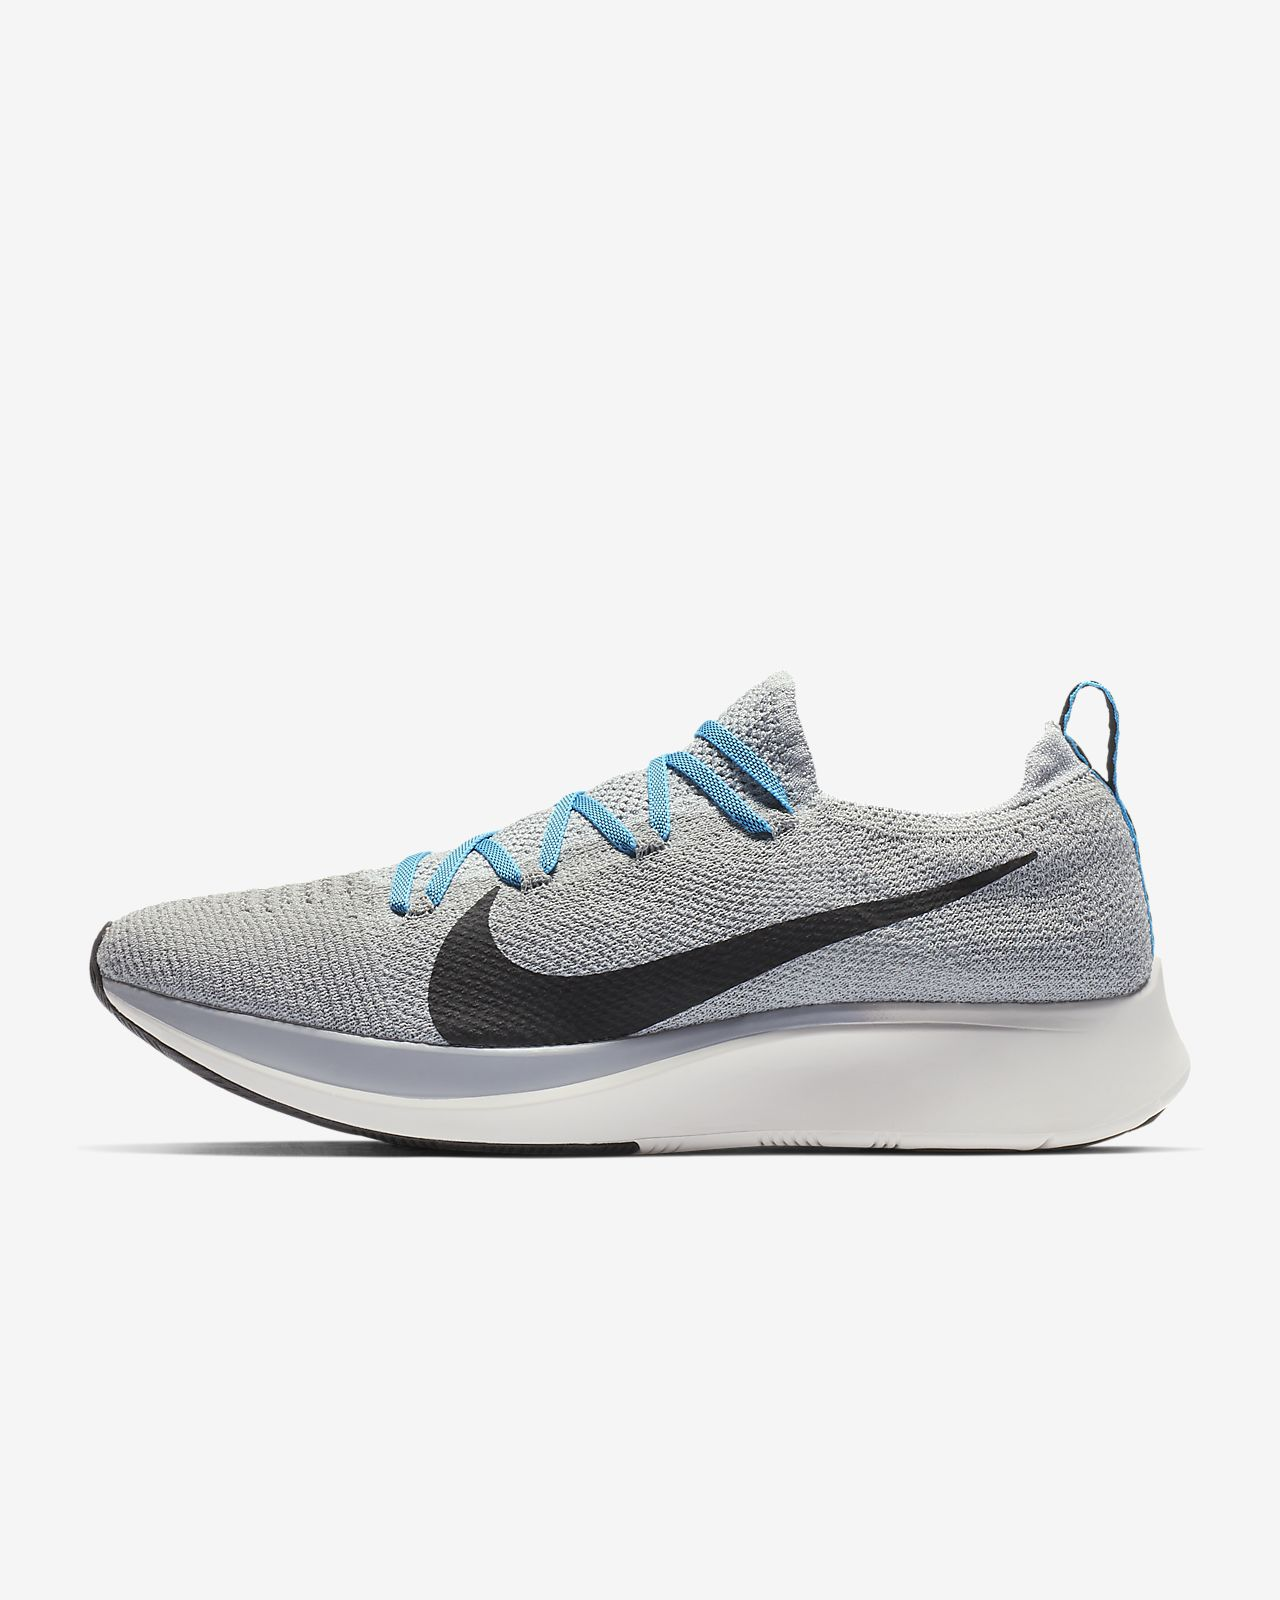 ae3a500d2bdc Nike Zoom Fly Flyknit Men s Running Shoe. Nike.com AT